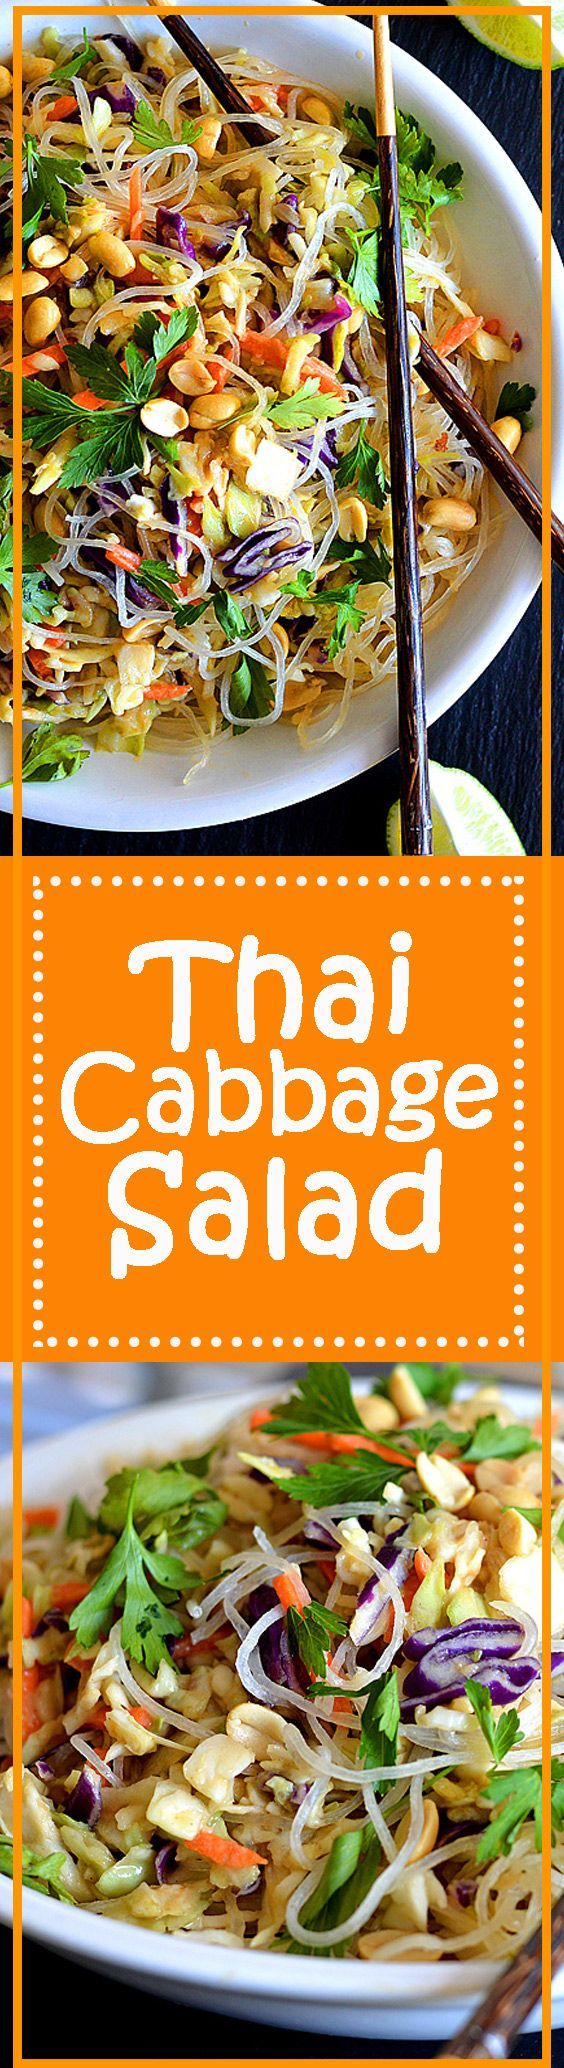 Thai Cabbage Salad - With a preparation time of less than 20 minutes, this salad is full of flavor and a perfect meal when you are on-the-go. Vegan and Gluten-free lunch or dinner meal